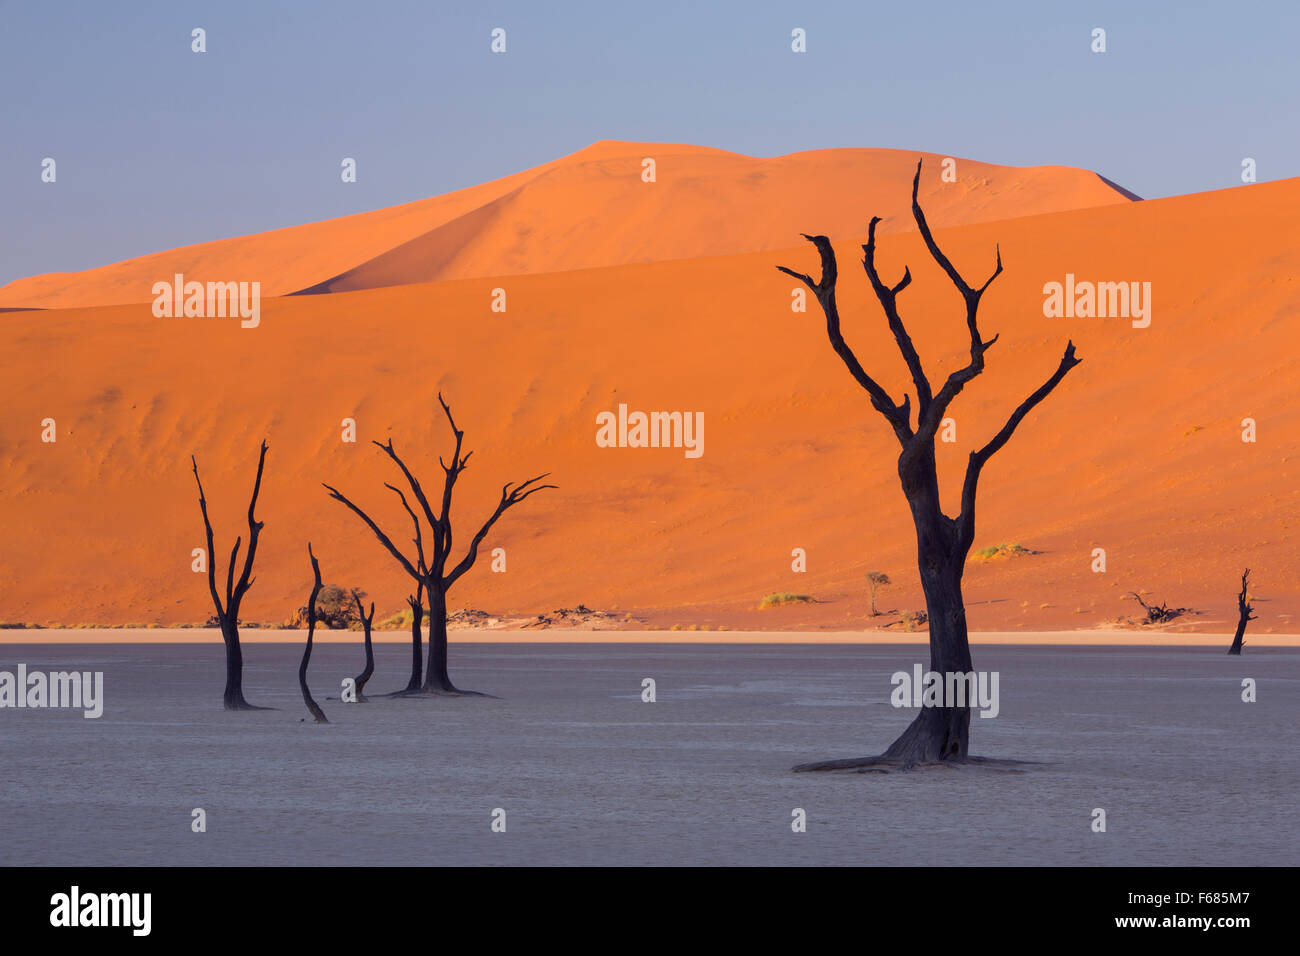 Desiccated camel-thorn trees in Deadvlei at sunrise, Namibia, Africa - Stock Image